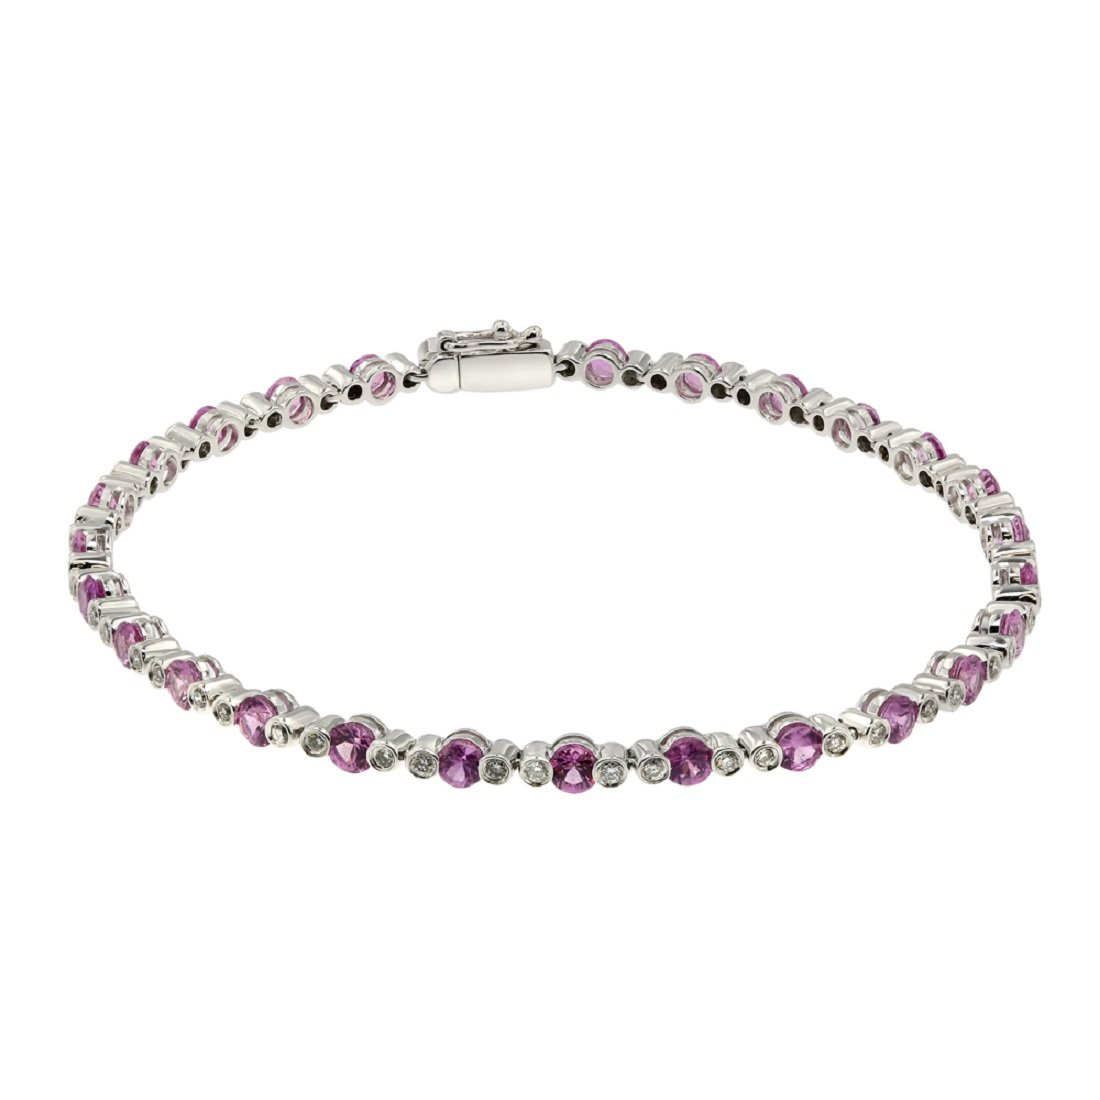 3.5 Carat Ruby, 0.5 Carat Diamond, Diamond Bracelet, 18K White Gold, Jewel Ivy 18K Bracelet with Ruby & Diamonds, Rare, Classy